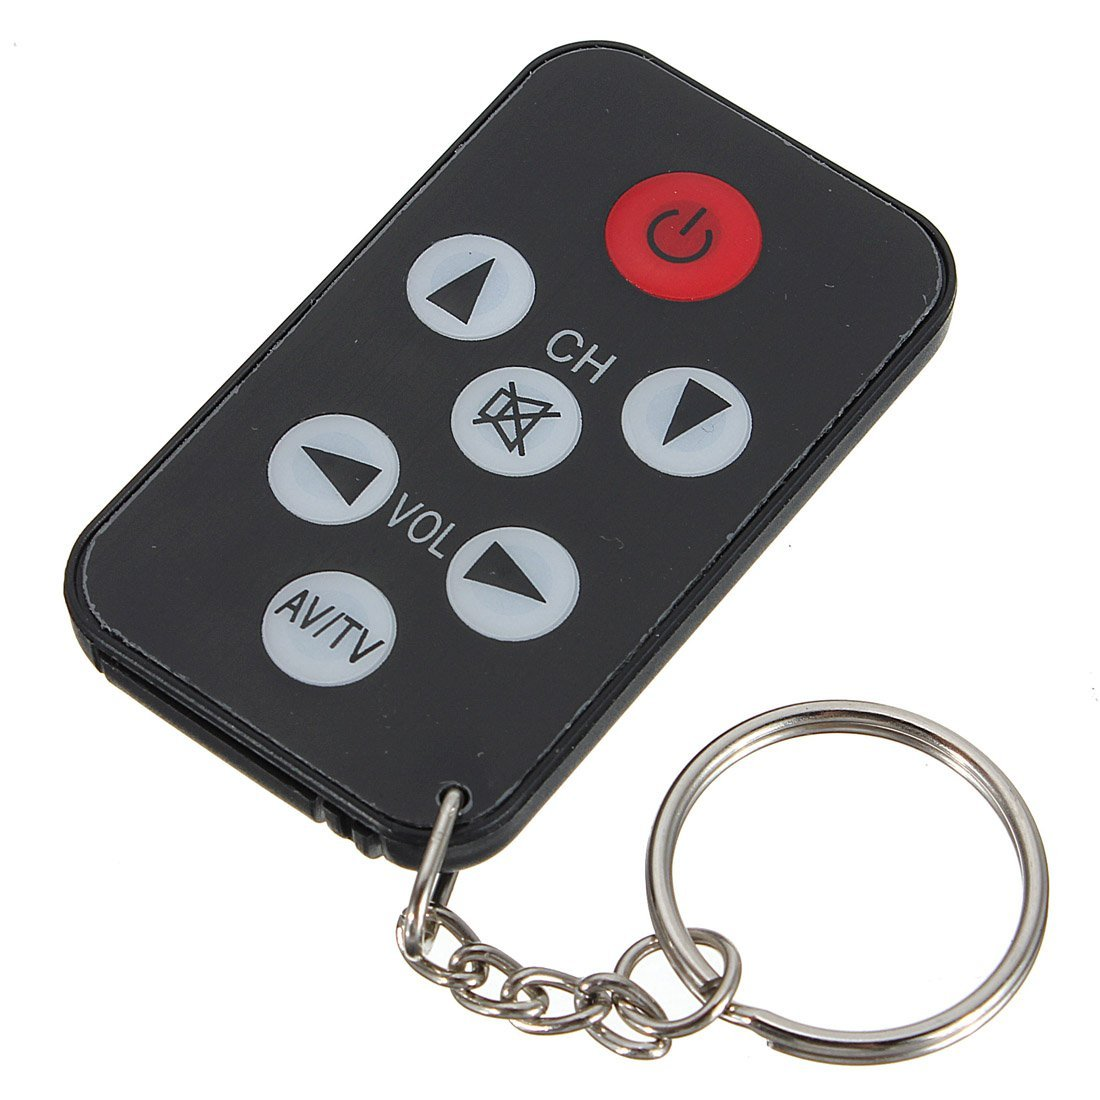 CES-Mini Universal IR TV Remote Control 7 Keys with Keychain Black